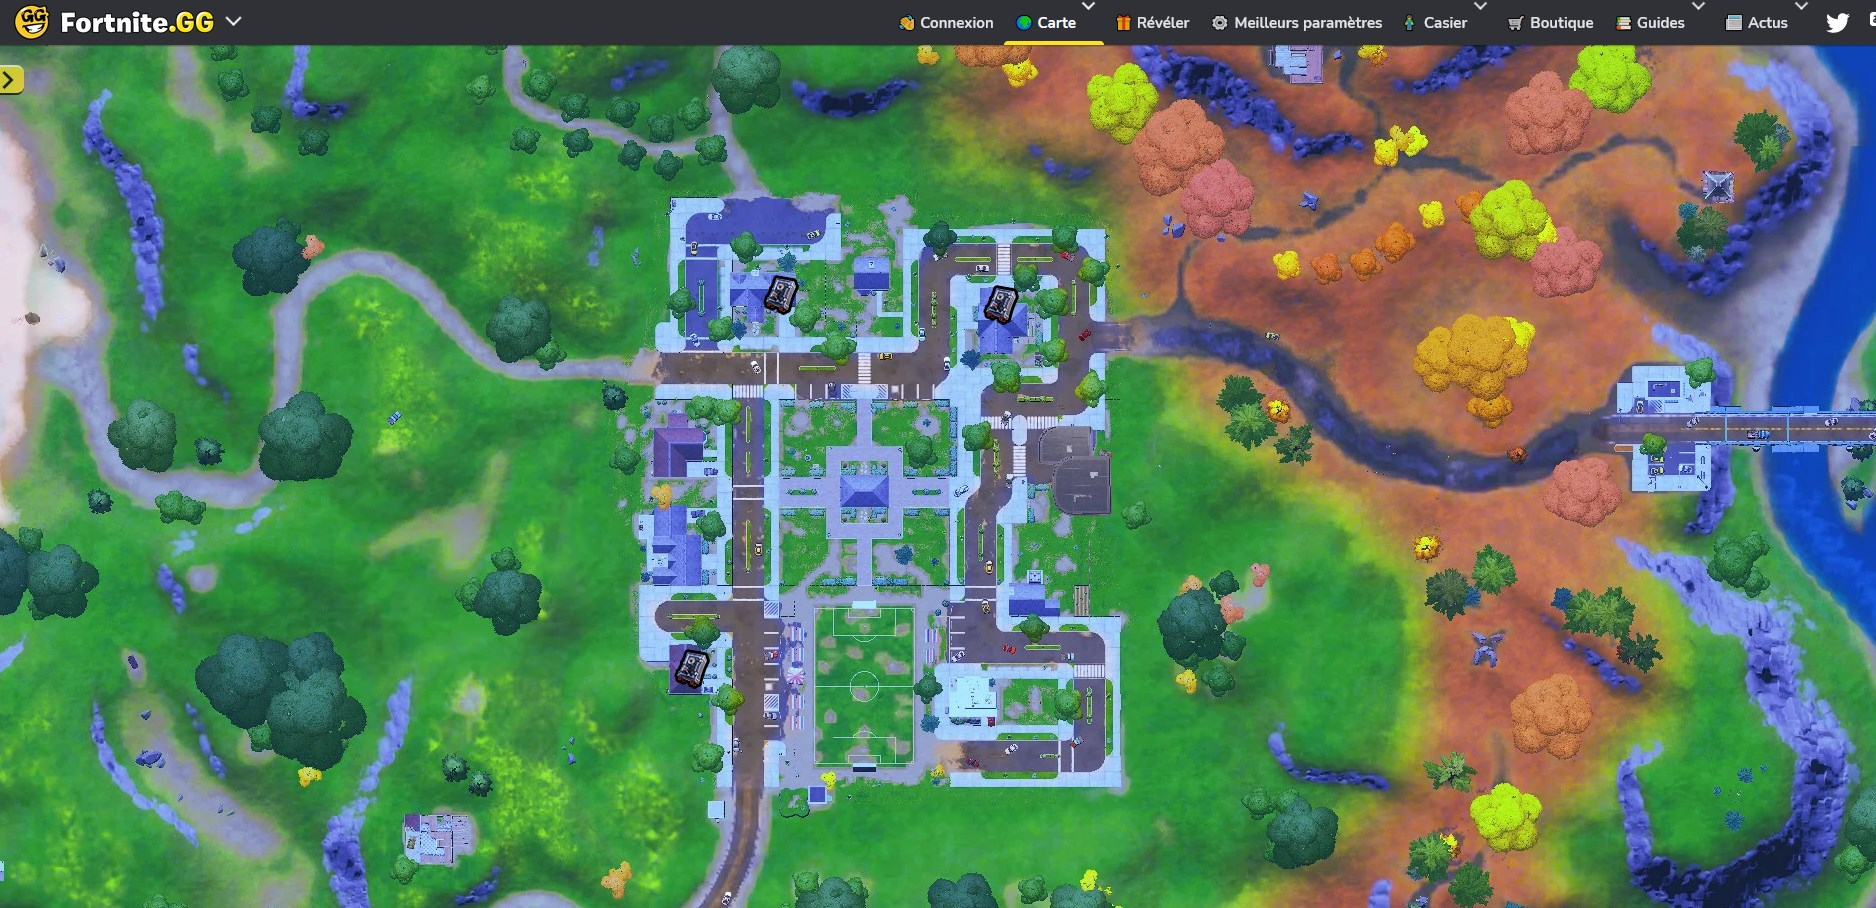 coffre-fort-emplacement-fortnite-4